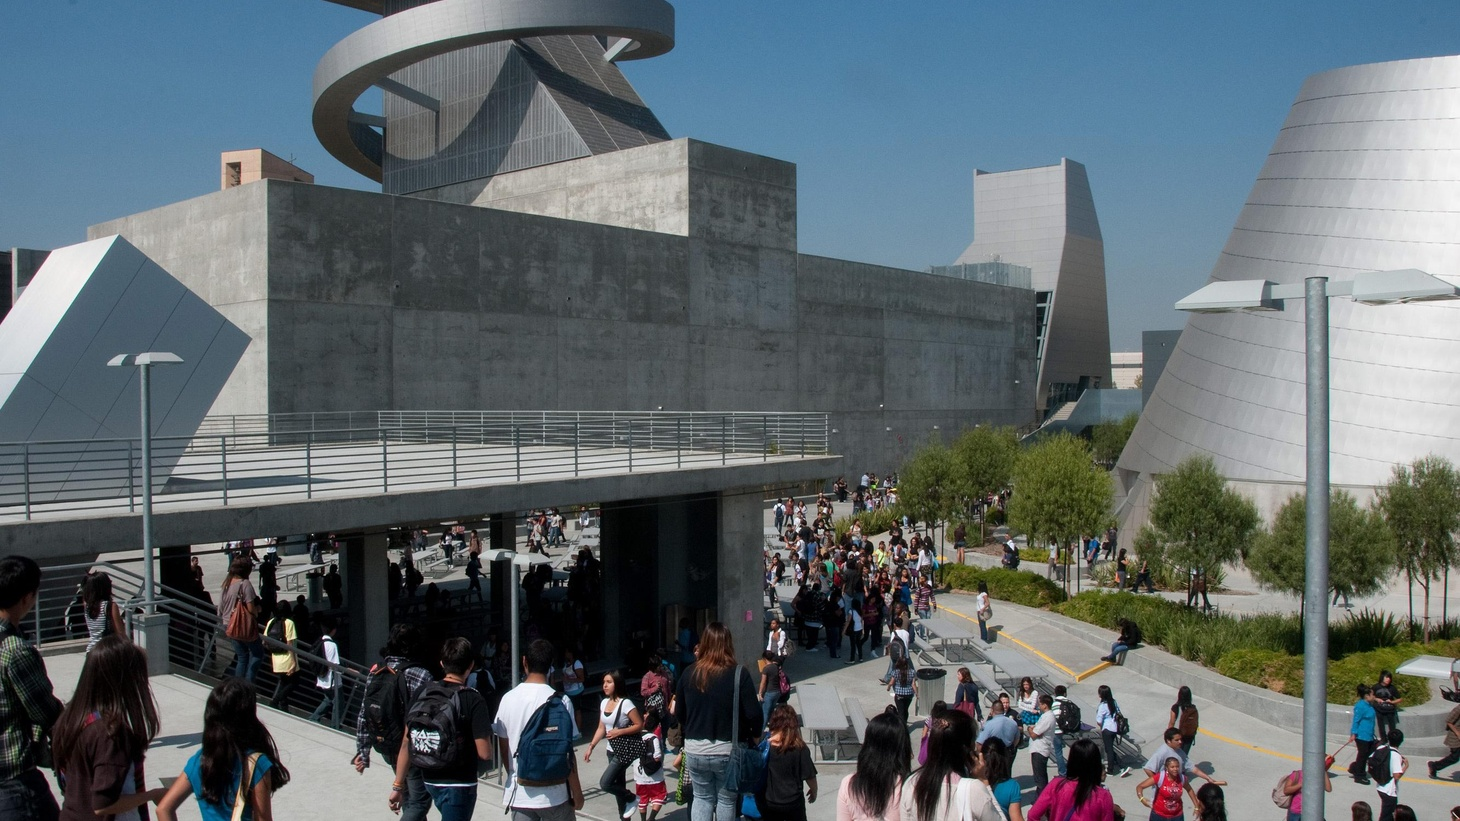 The LAUSD's new flagship arts high school opened last week. Will this icon for the underserved enable creativity? We hear about it from architect Wolf Prix, Rex Patton, some students and others. Also, we hear about the real (M)ad Men, from filmmaker Doug Pray. Plus, Ken Bernstein tells us why the city is surveying every single building in LA.